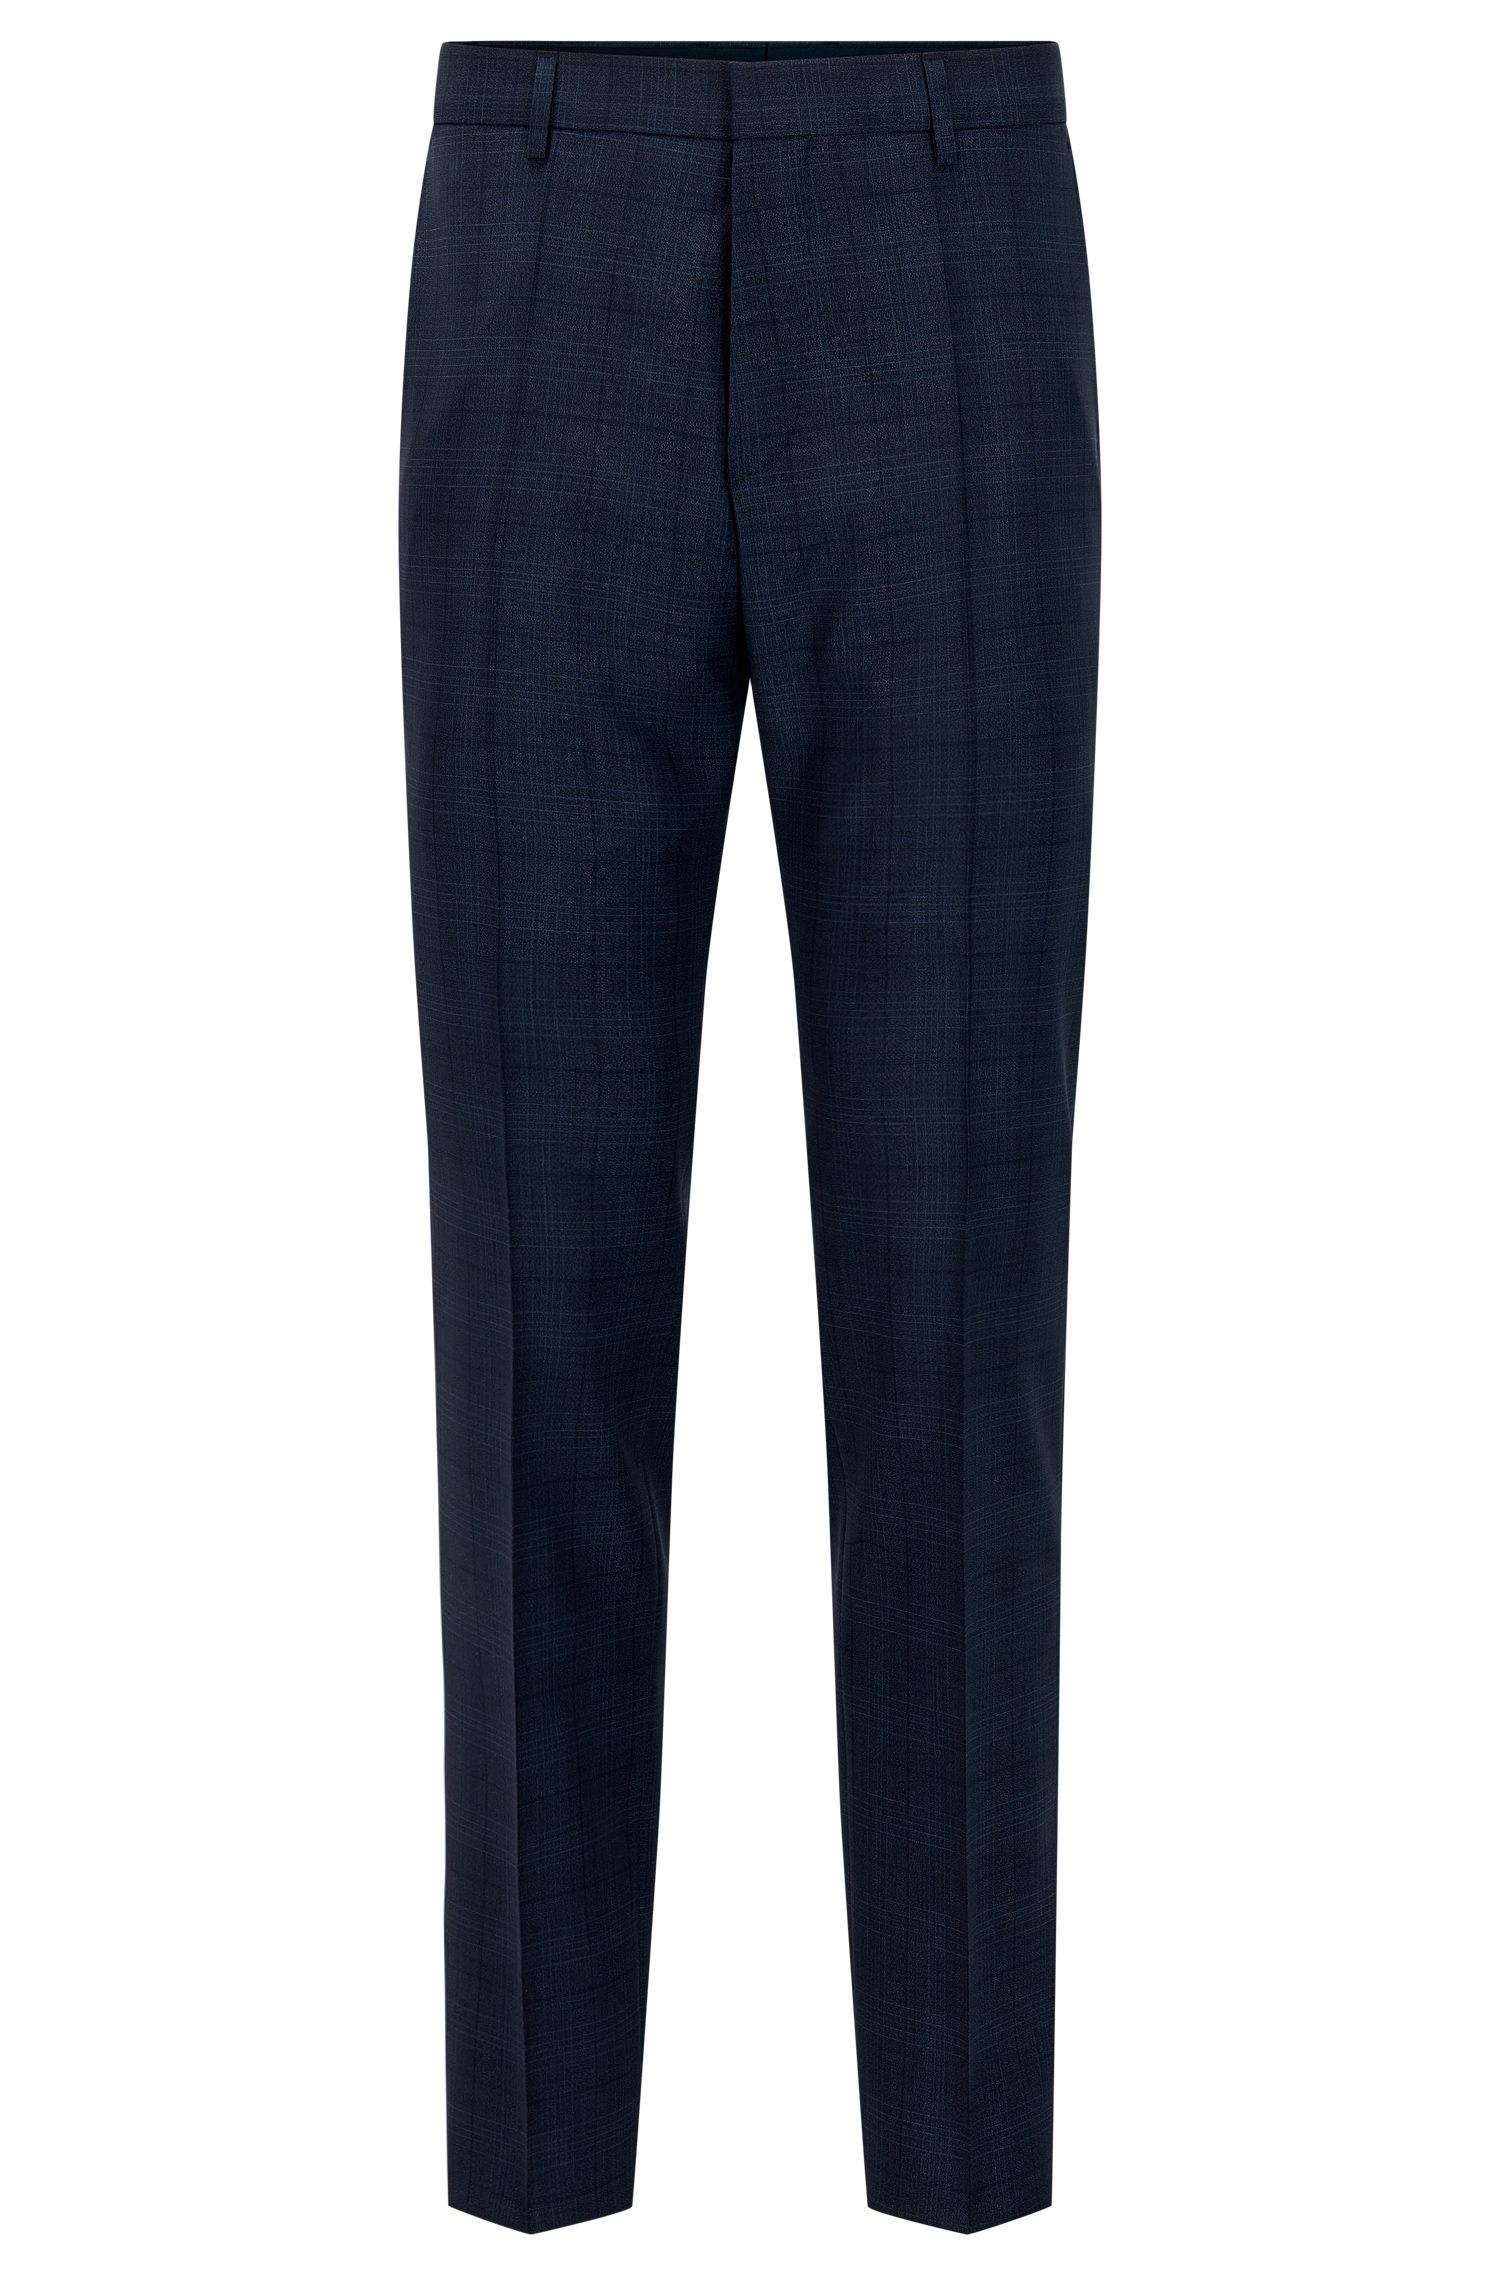 Glen Check Virgin Wool Dress Pant, Slim Fit | Genesis